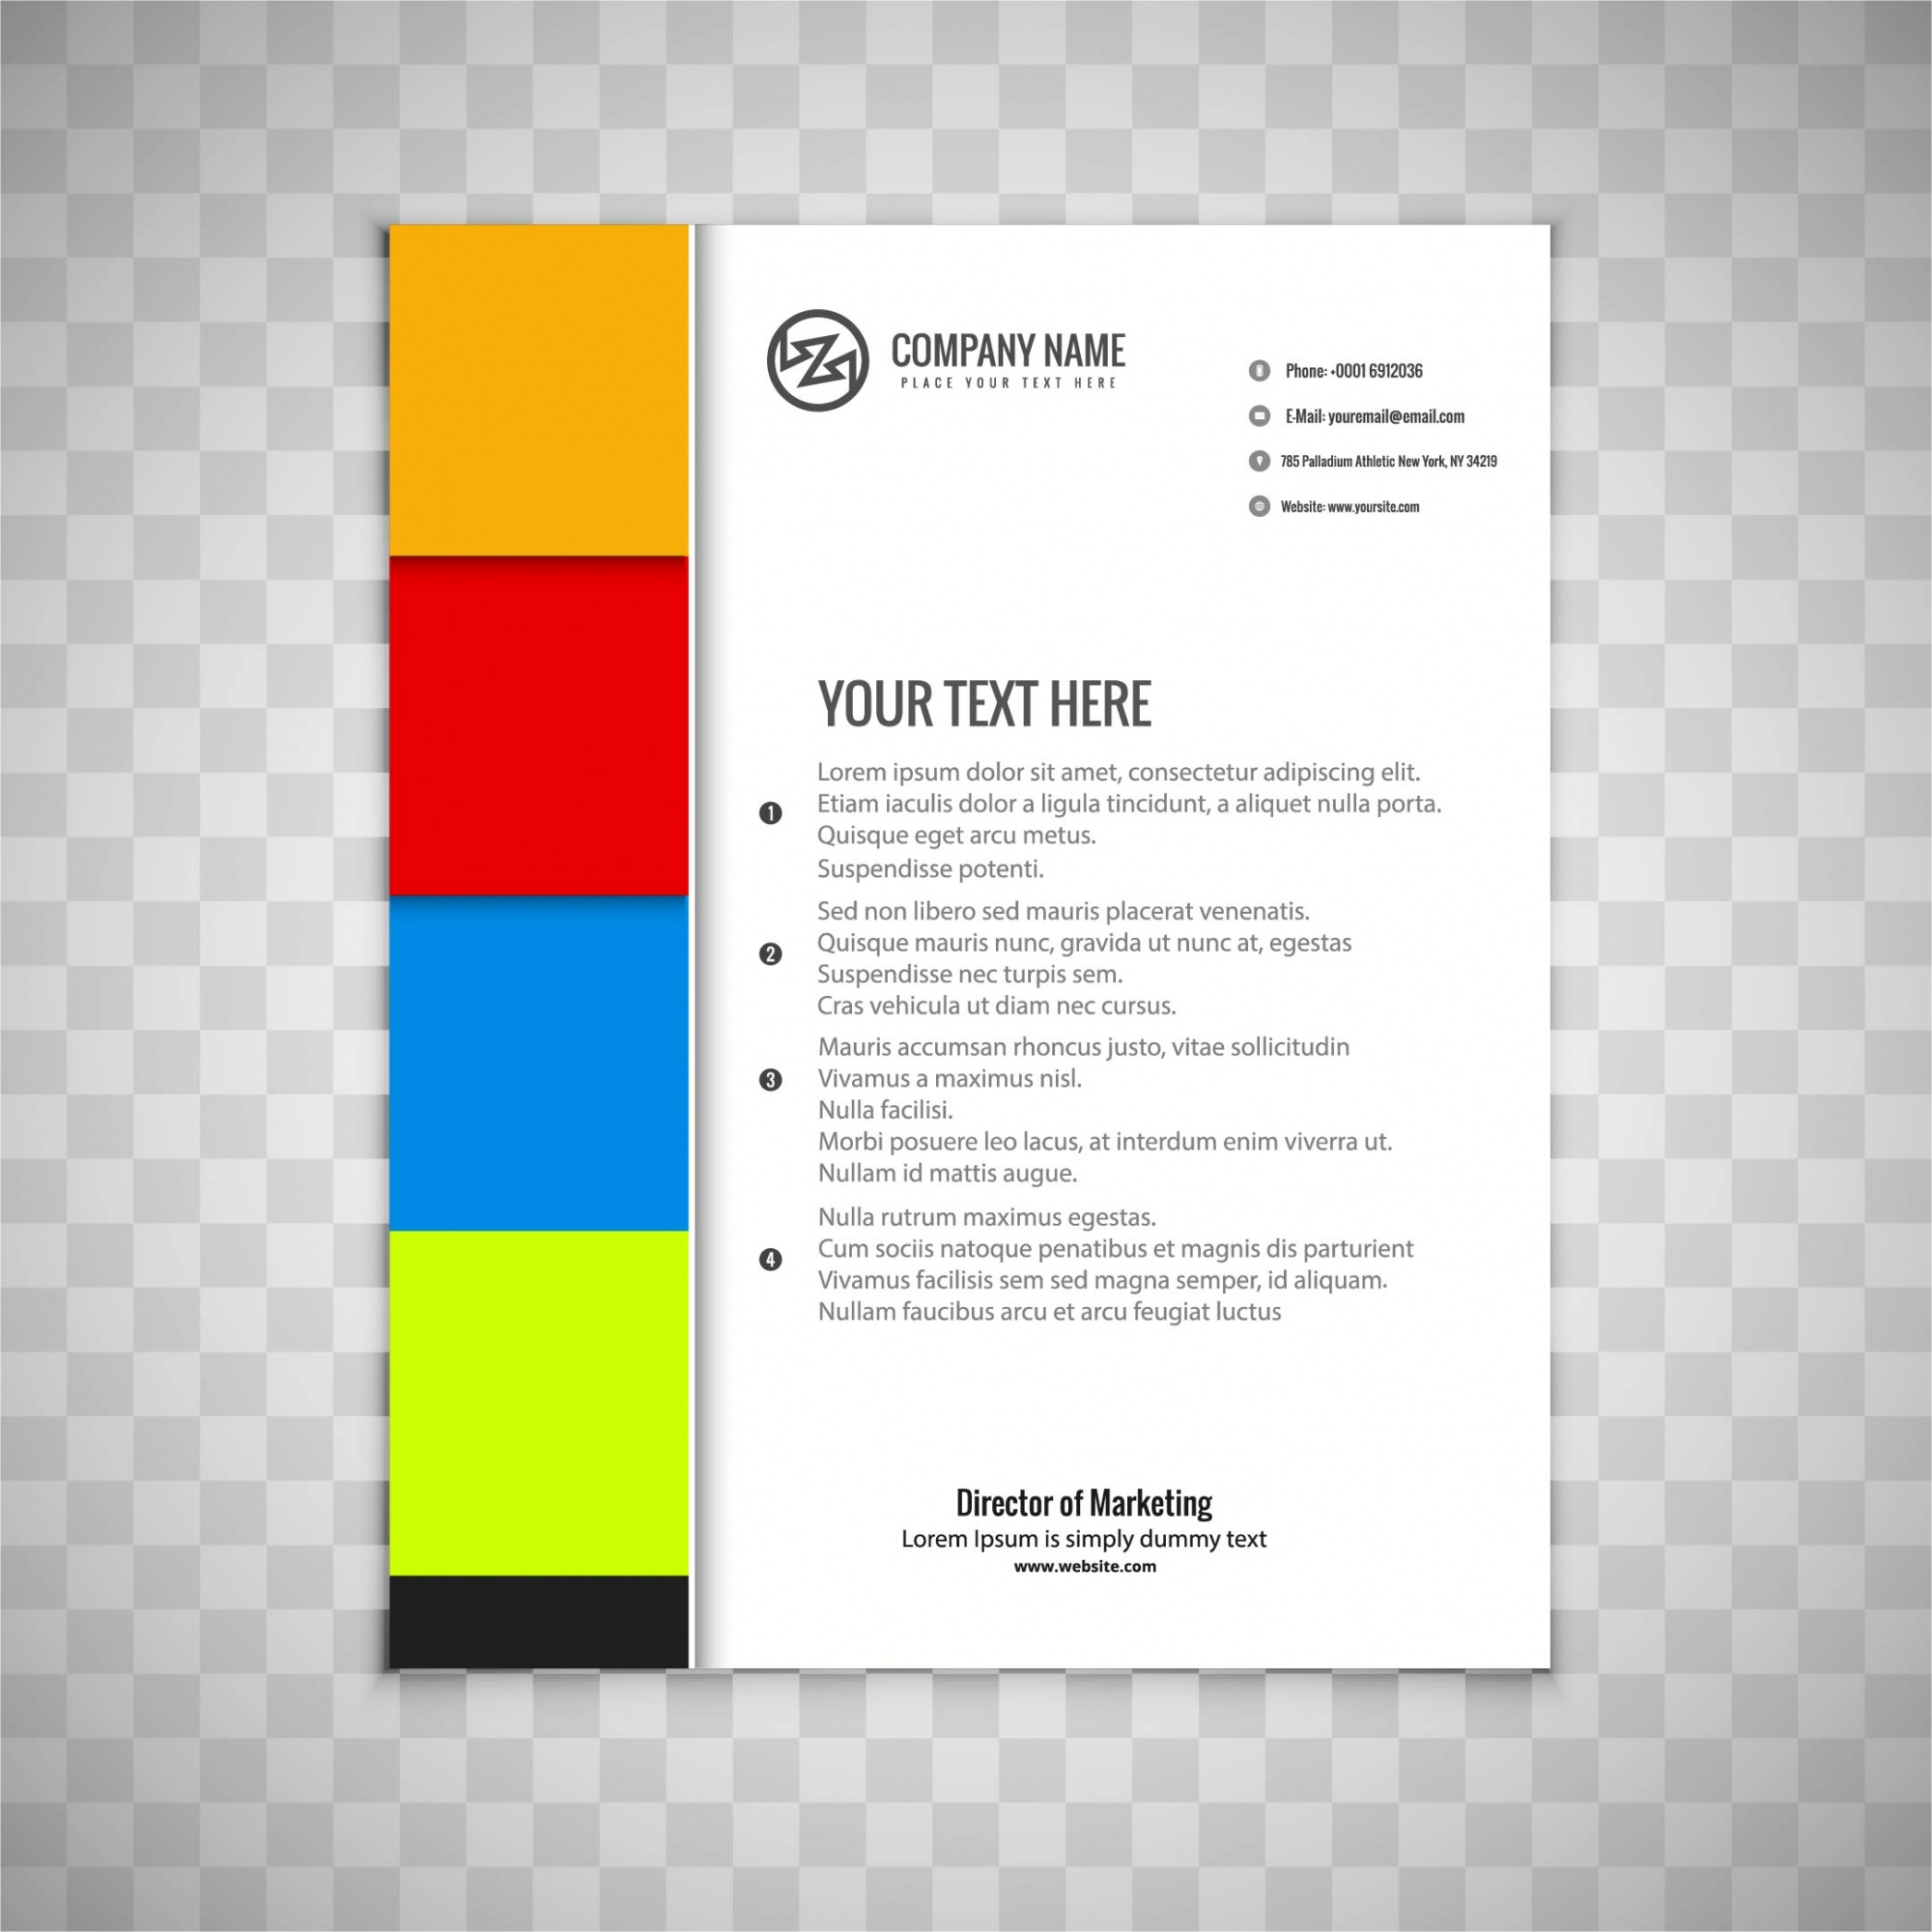 Colorful brochure page design